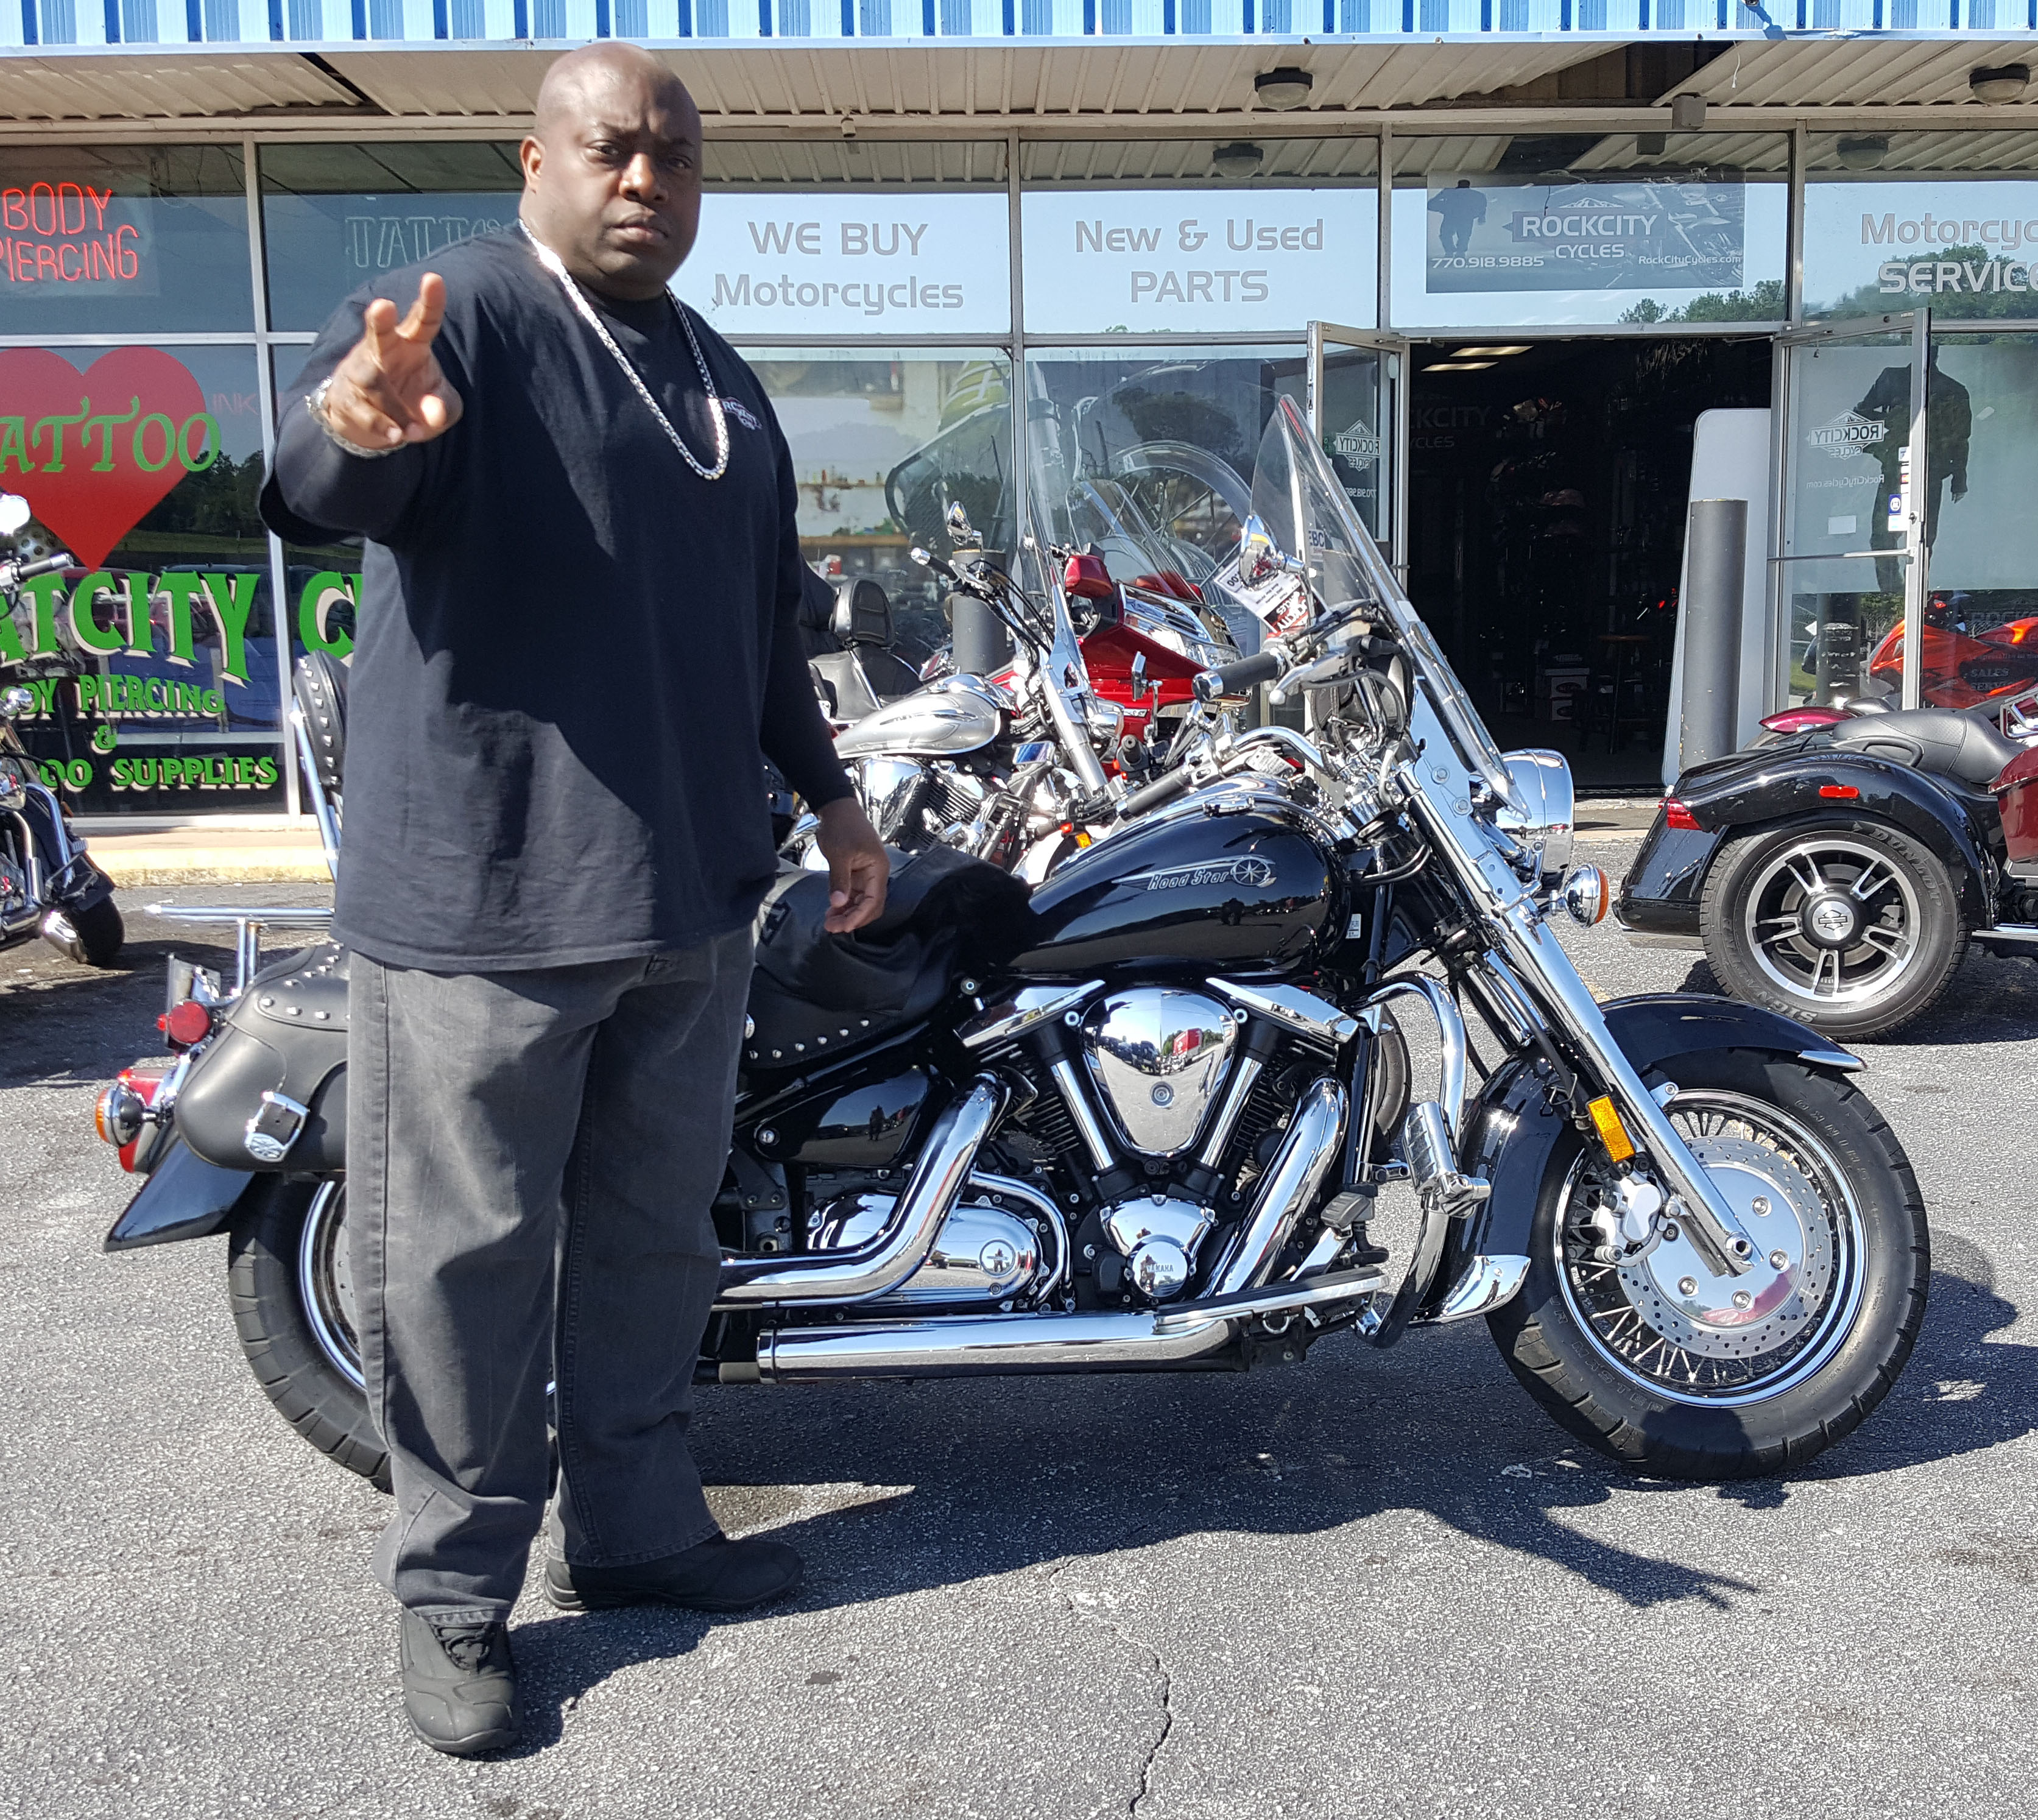 Christopher T. with his 2002 Yamaha Road Star XV1600